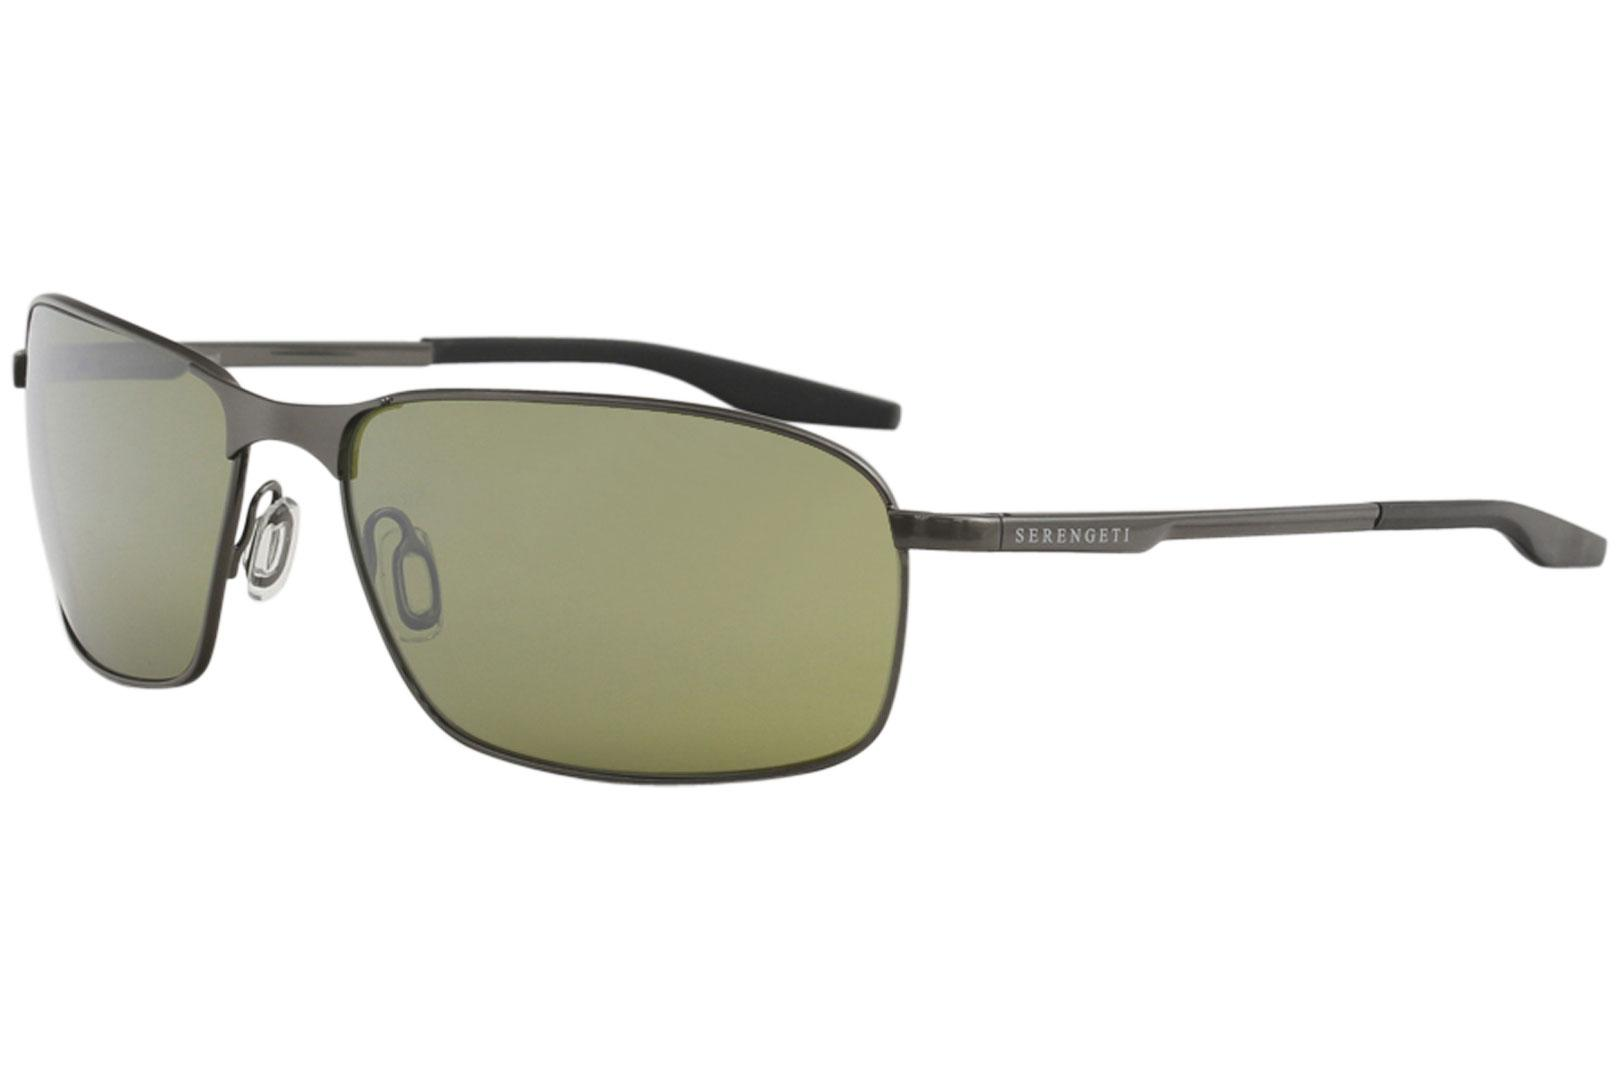 f6af21b0976d8 Serengeti Men s Varese Fashion Rectangle Sunglasses by Serengeti. Touch to  zoom